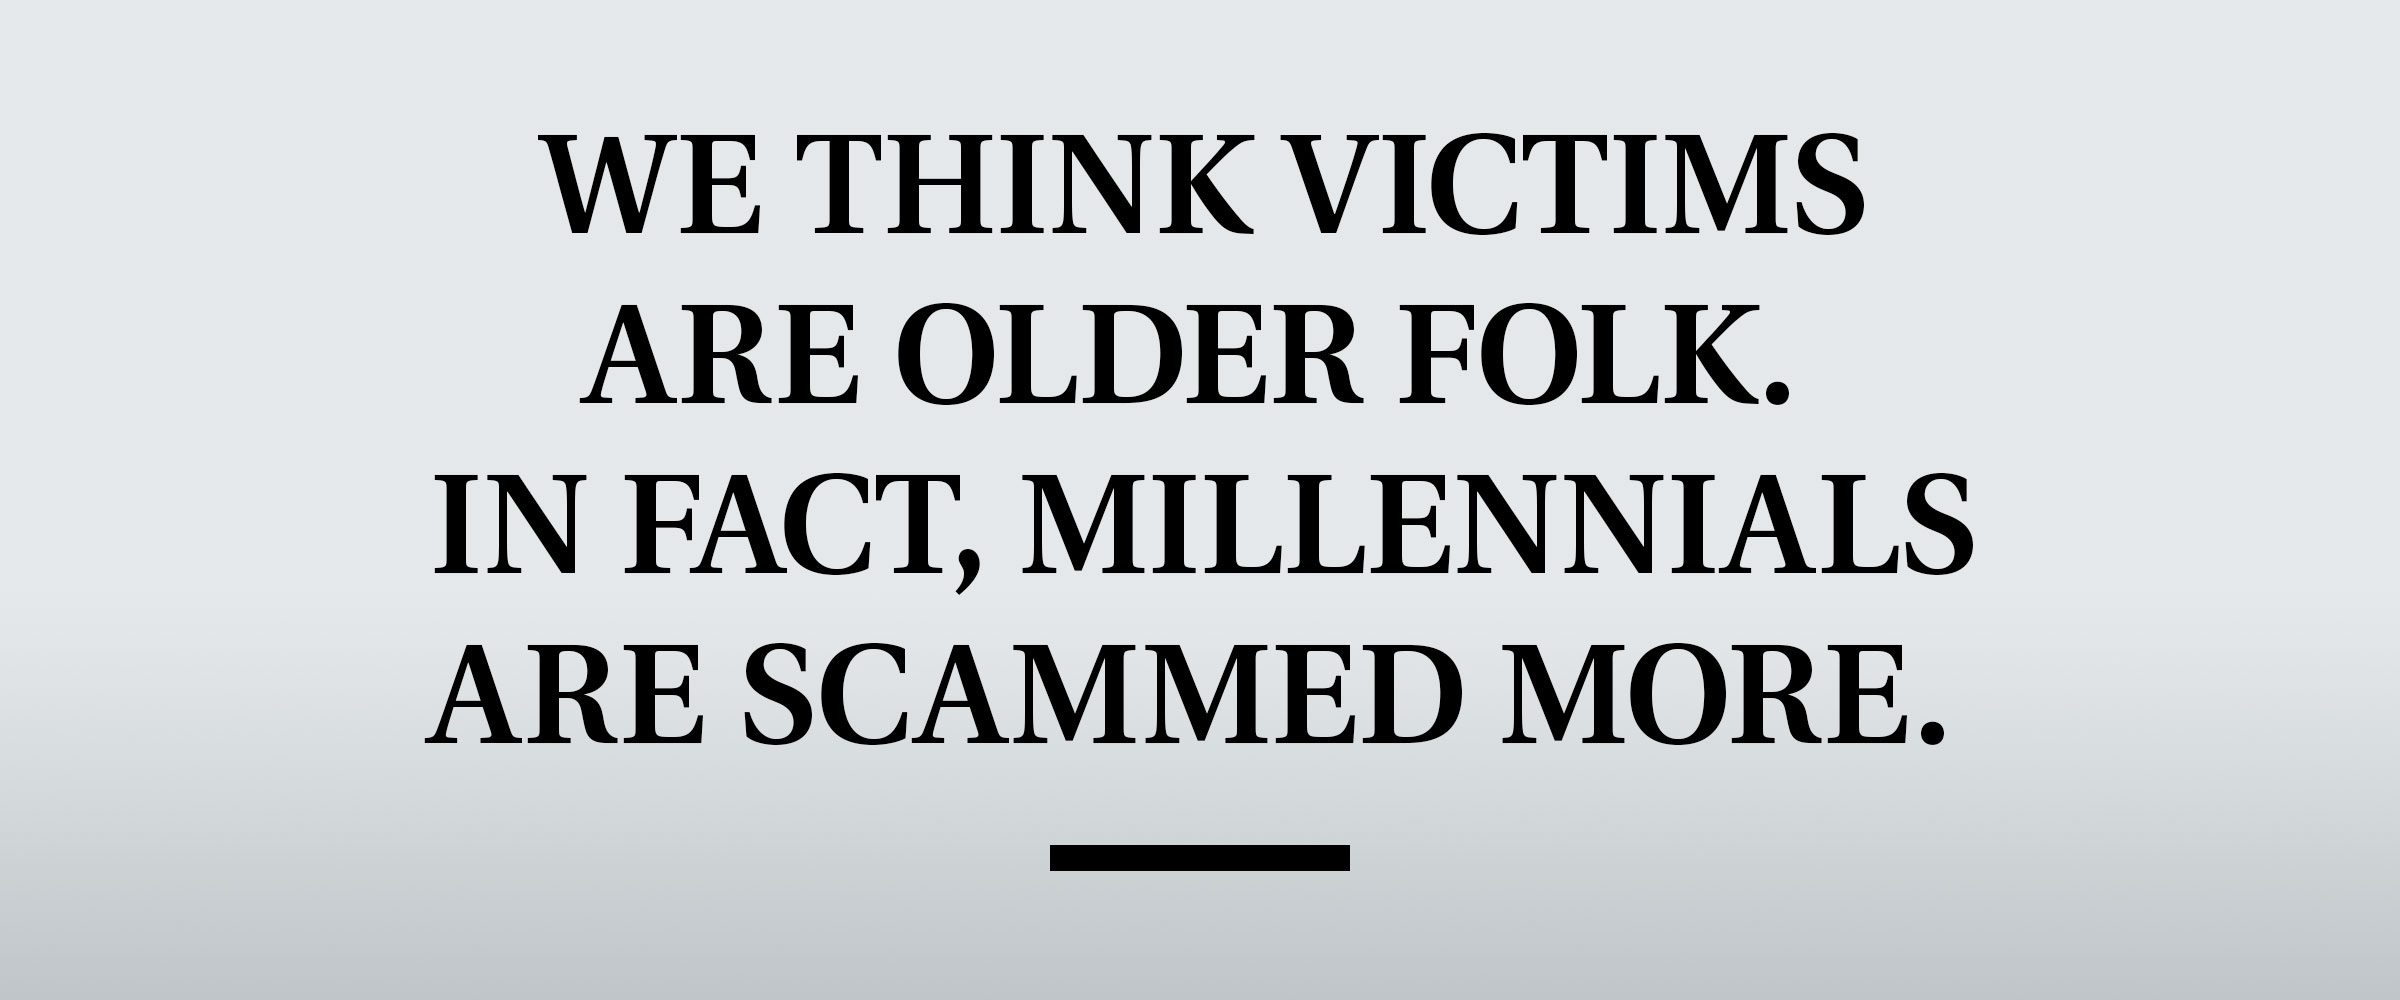 pull quote text: We think victims are older folk. In fact, Millennials are scammed more.